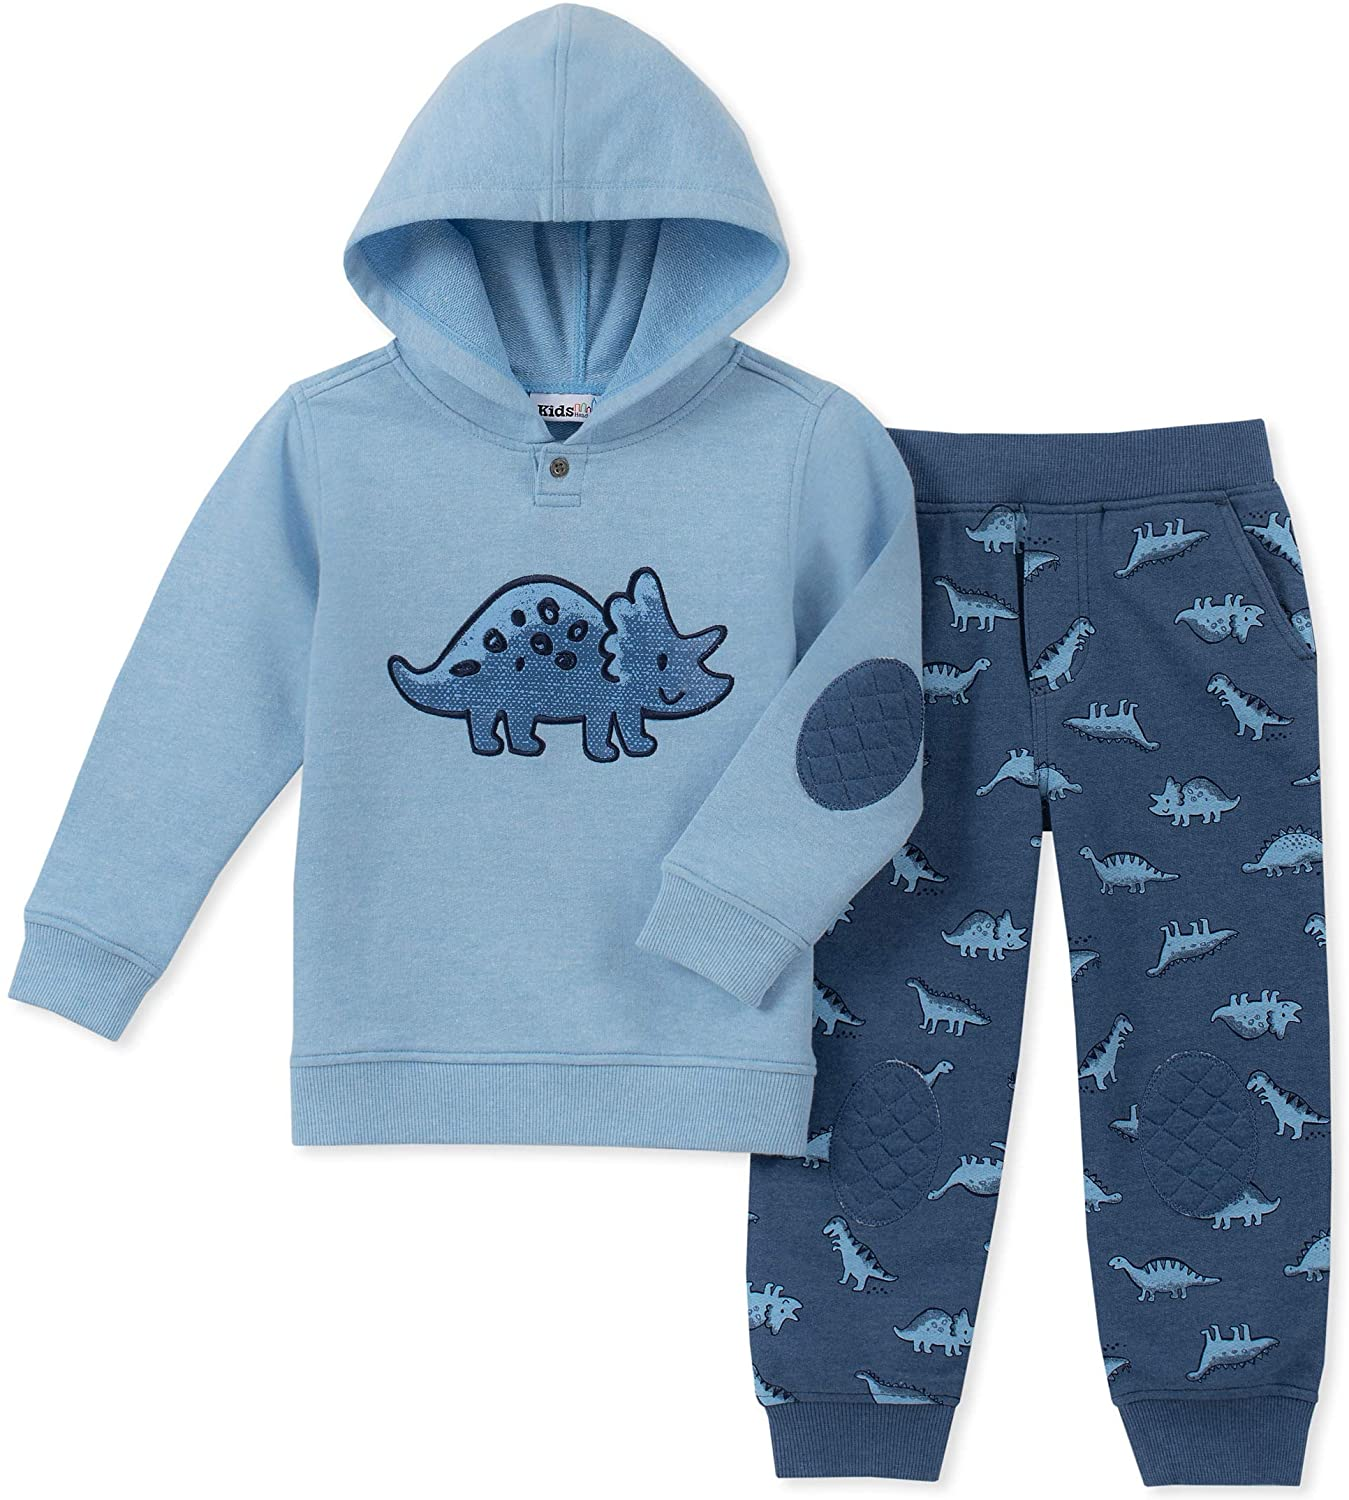 Kids Headquarters Baby Boys 2 Pieces Hooded Pants Set